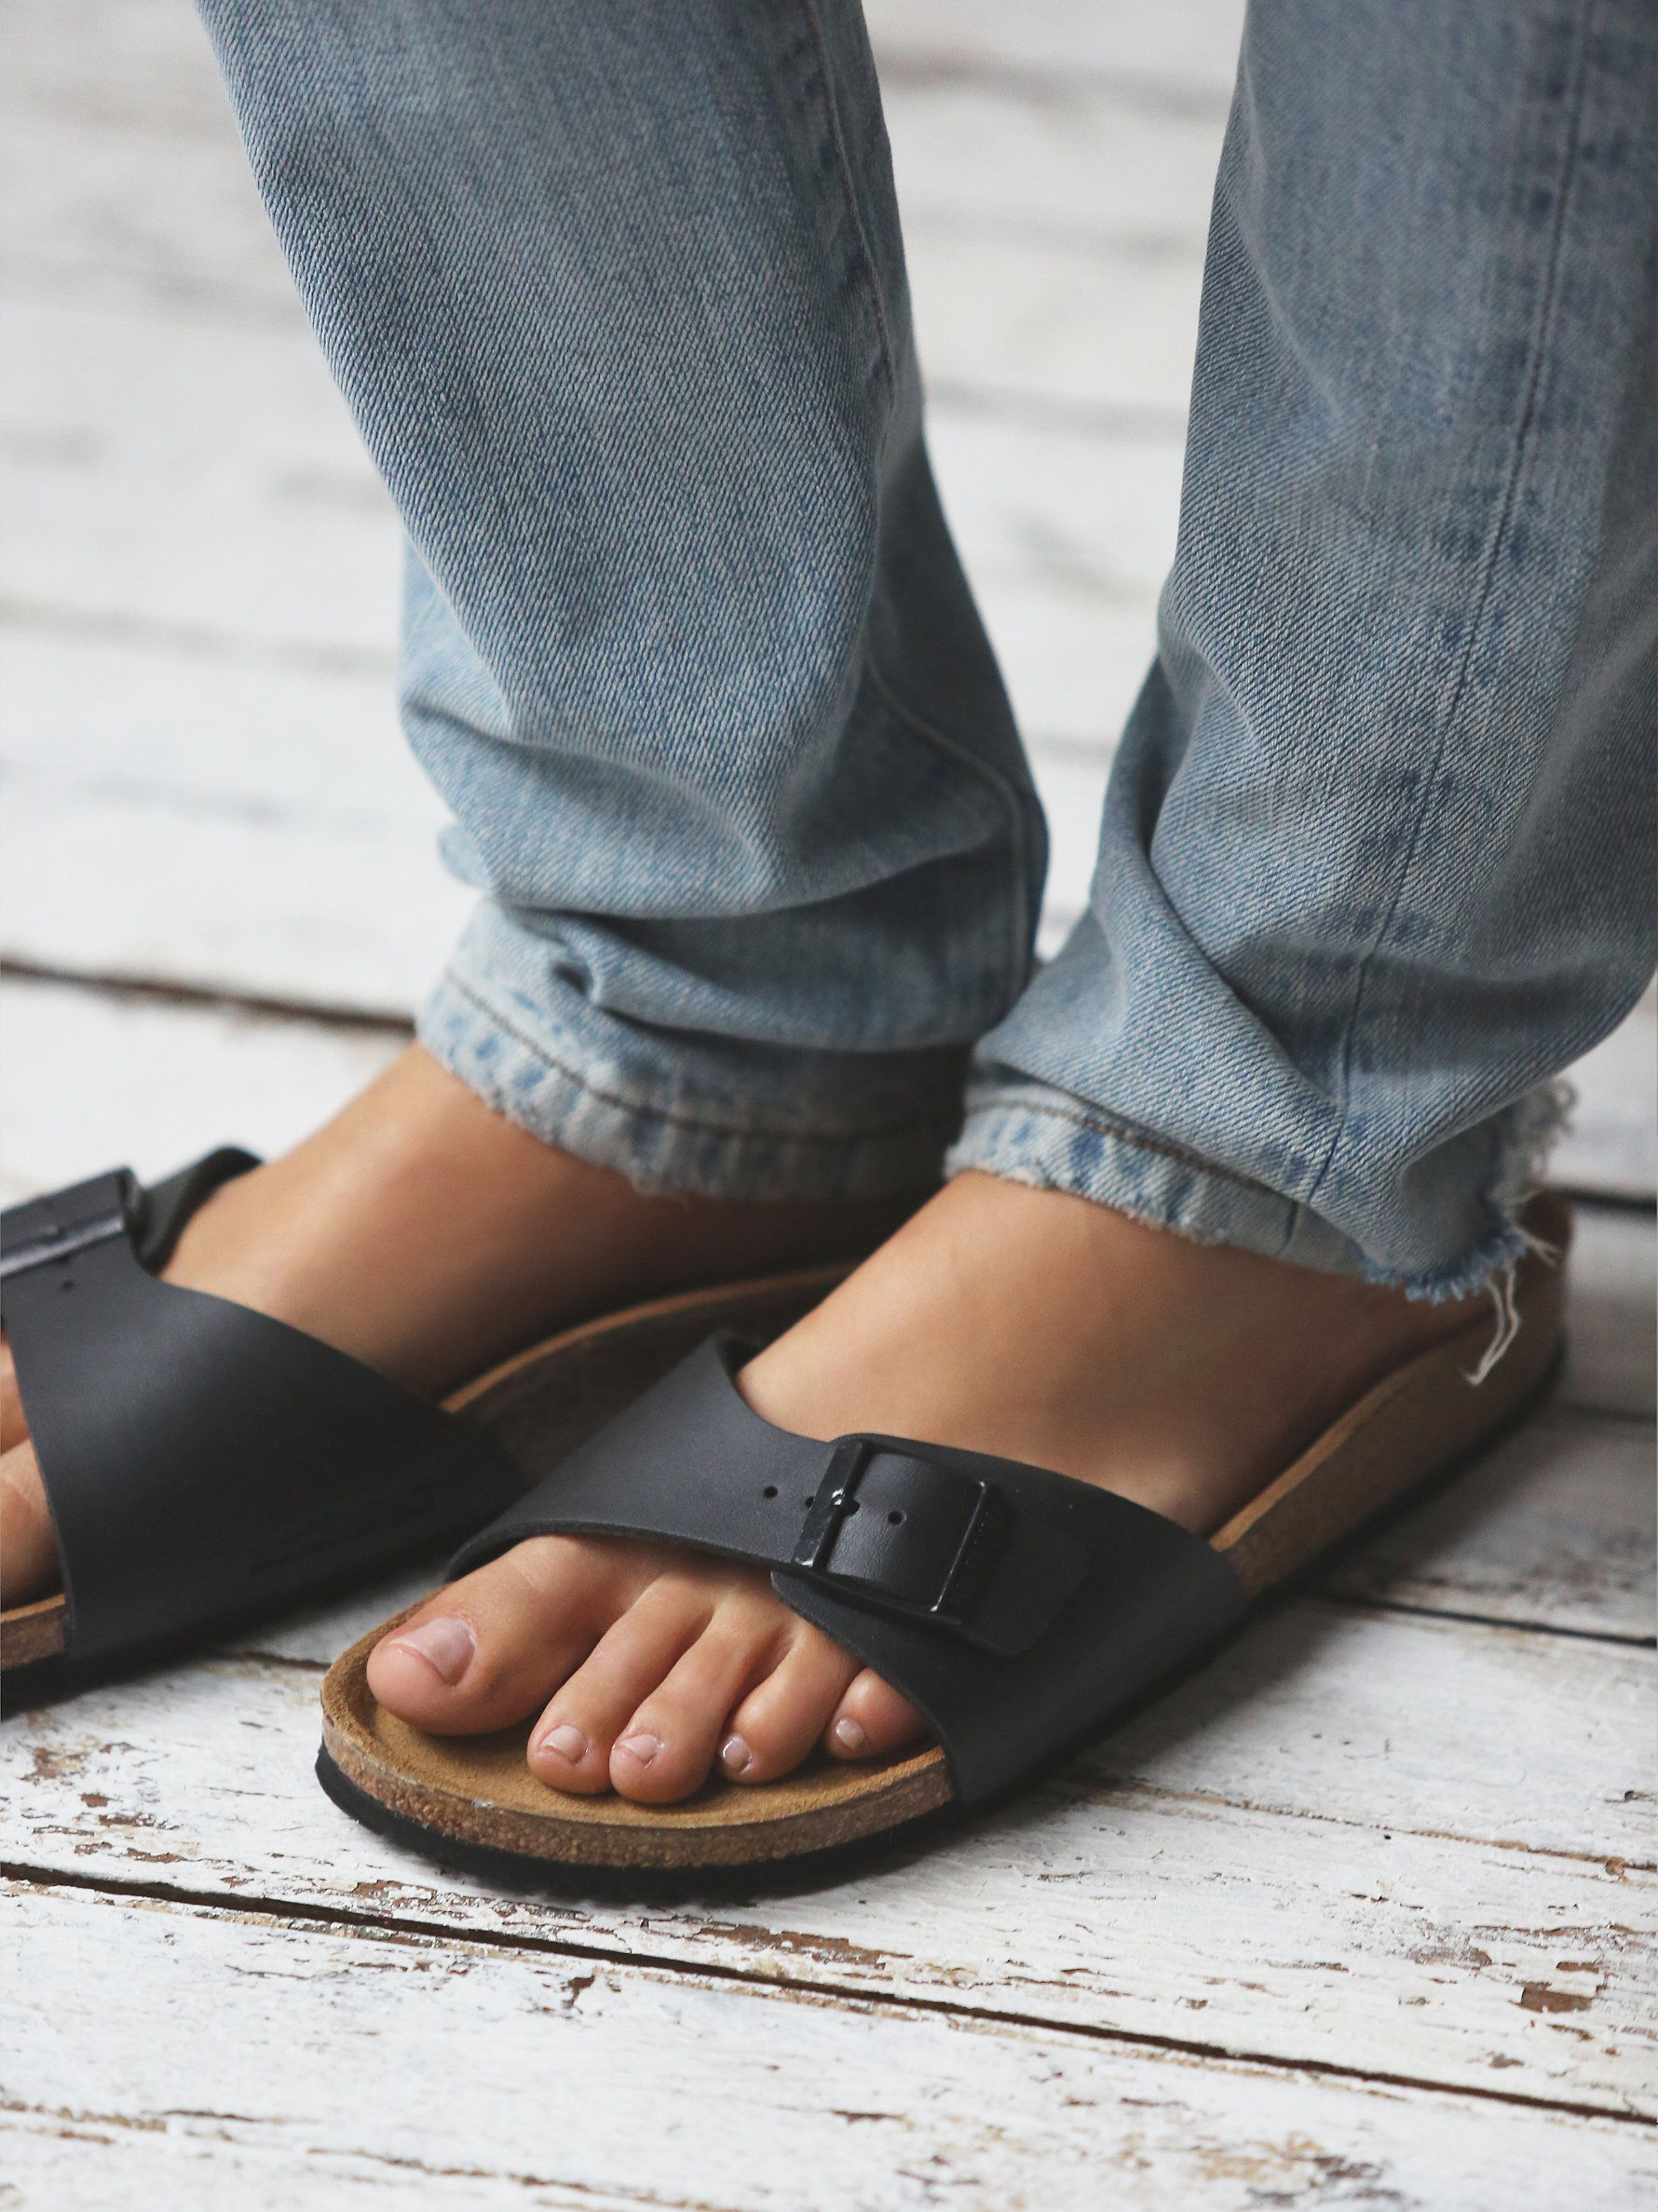 56456efcf9551d Jeans with Birkenstock Madrid Sandals